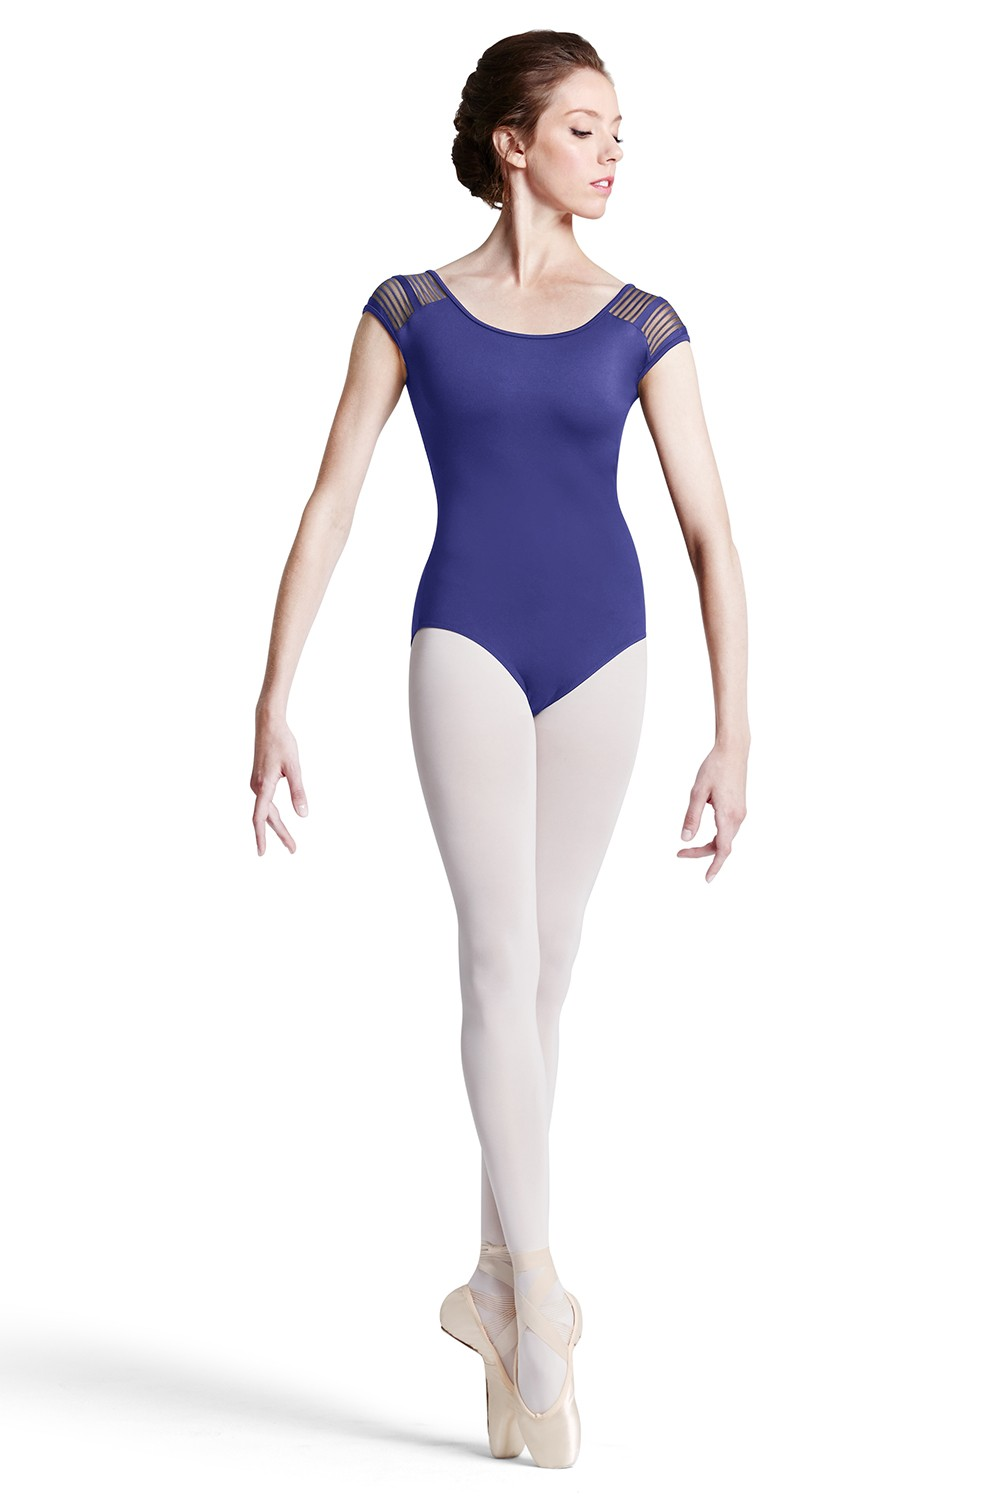 Lace Trim Cap Slv Women's Dance Leotards